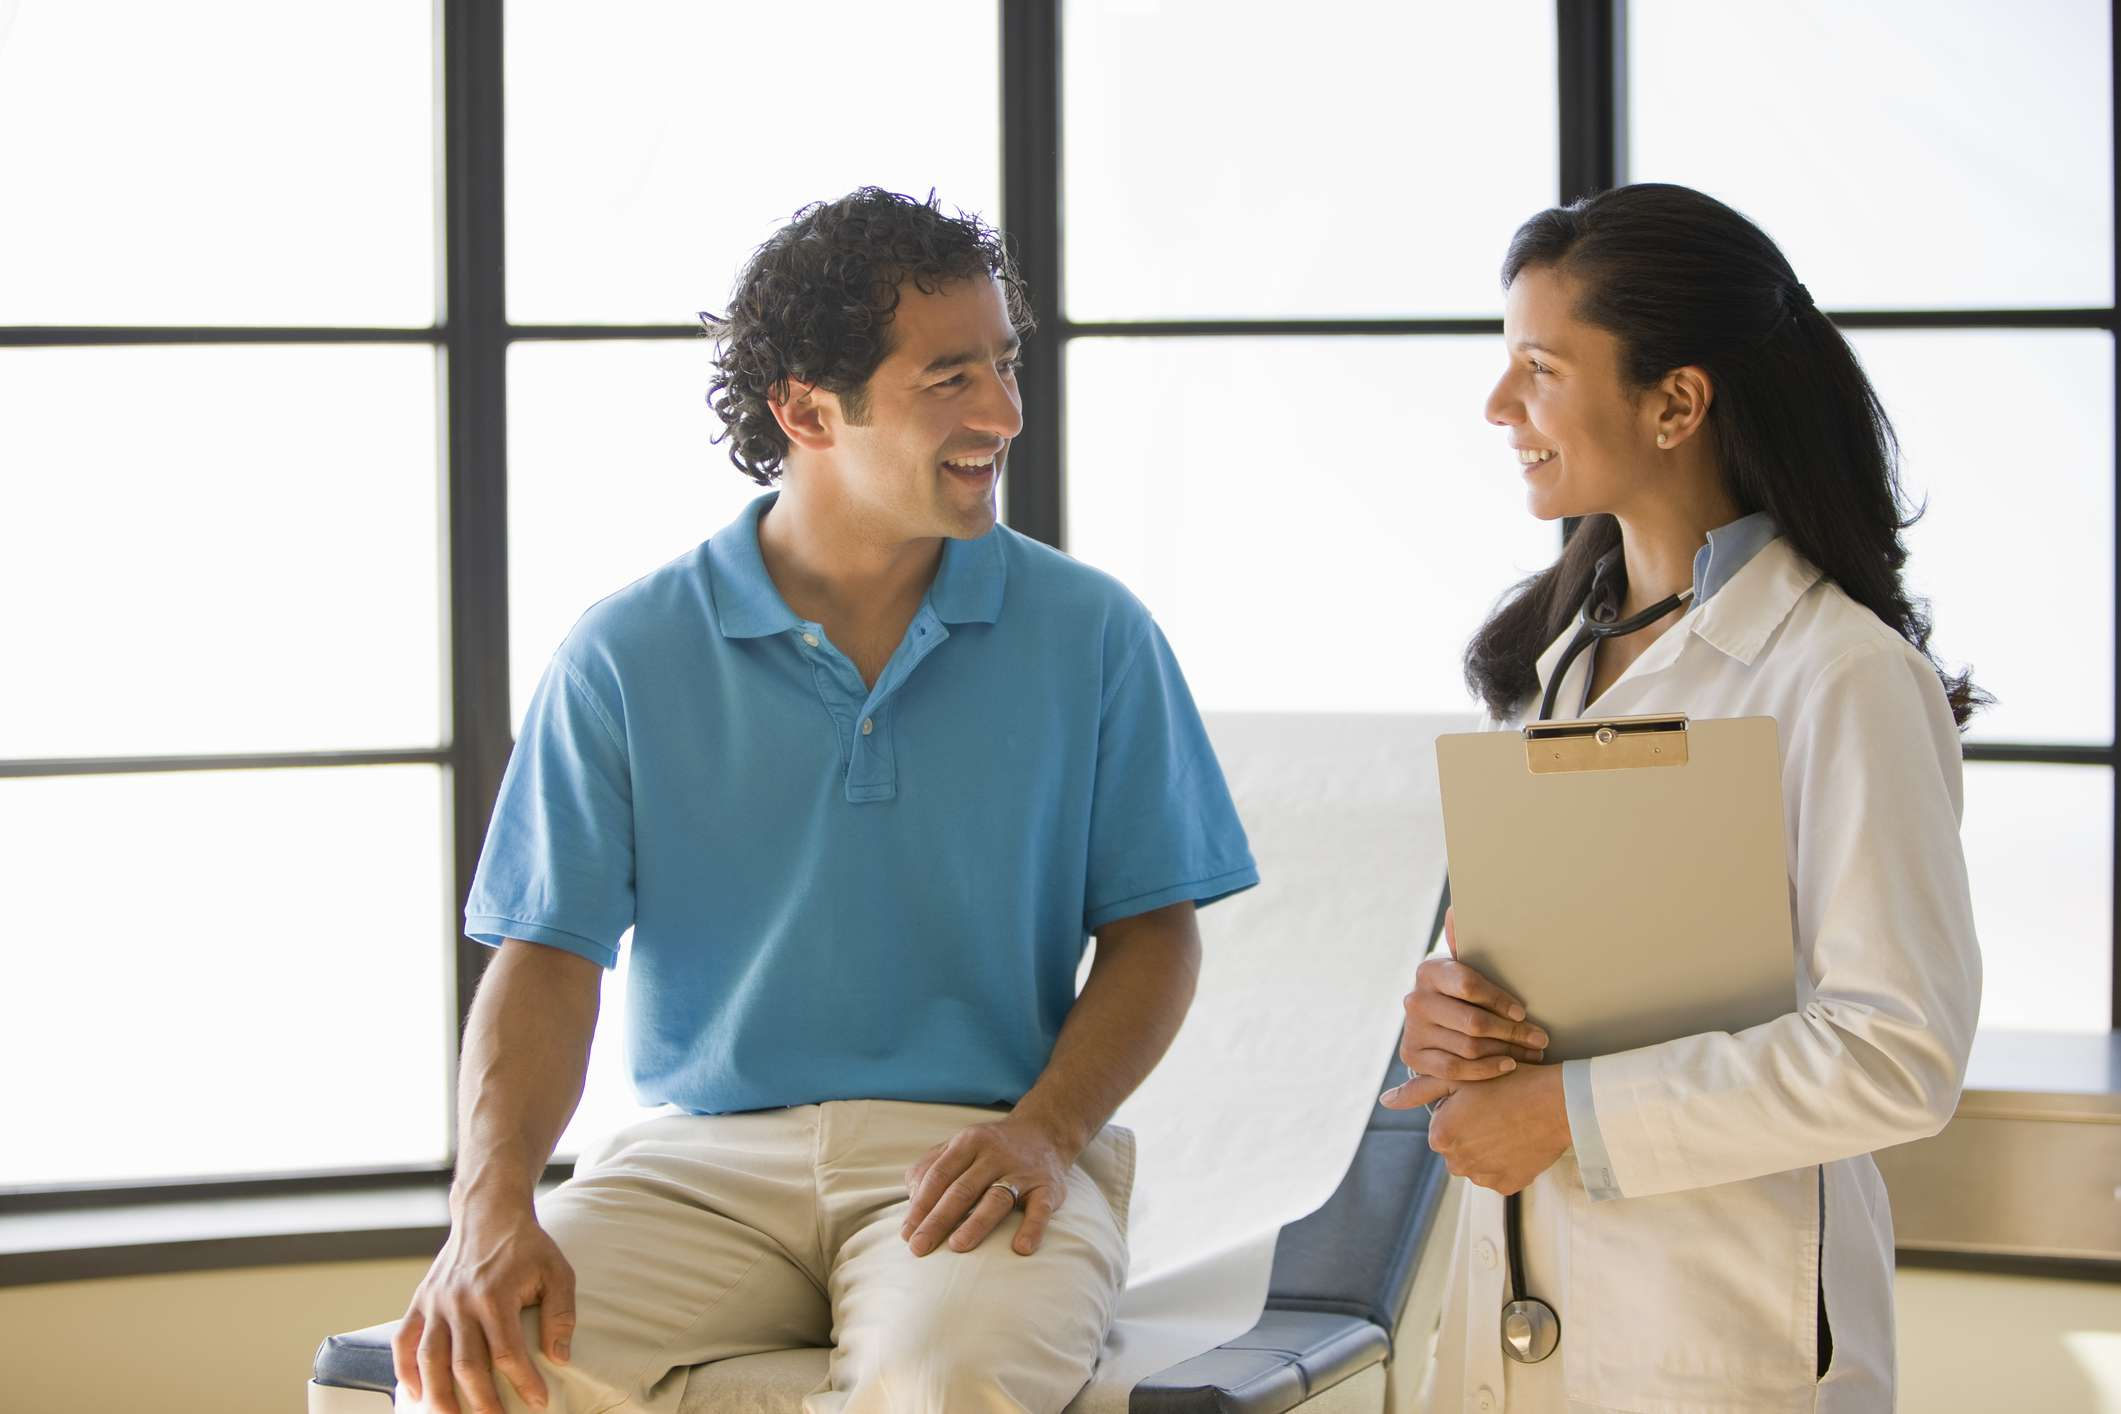 Female doctor talking with male patient, both smiling